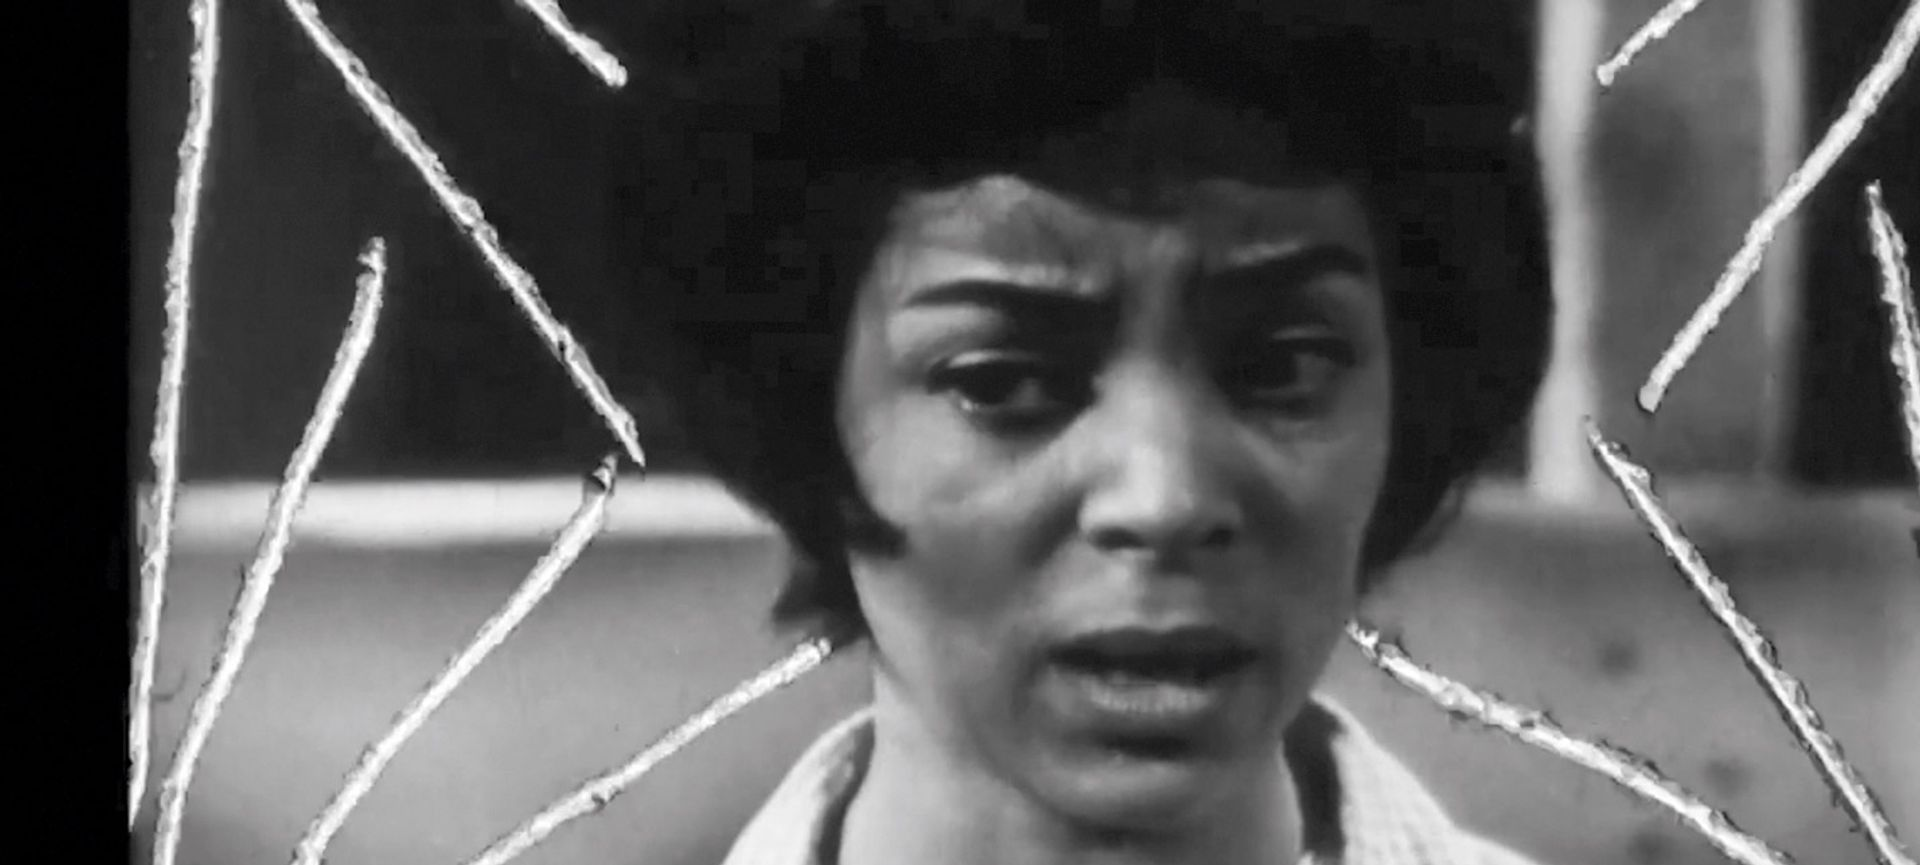 An Ecstatic Experience by Ja'Tovia Gary (2015) features civil rights activist Ruby Dee in therole of Fannie Moore, who tells the story of her family's enslavement An Ecstatic Experience by Ja'Tovia Gary (2015) features civil rights activist Ruby Dee in therole of Fannie Moore, who tells the story of her family's enslavement © Ja'Tovia Gary, courtesy Barbican Centre